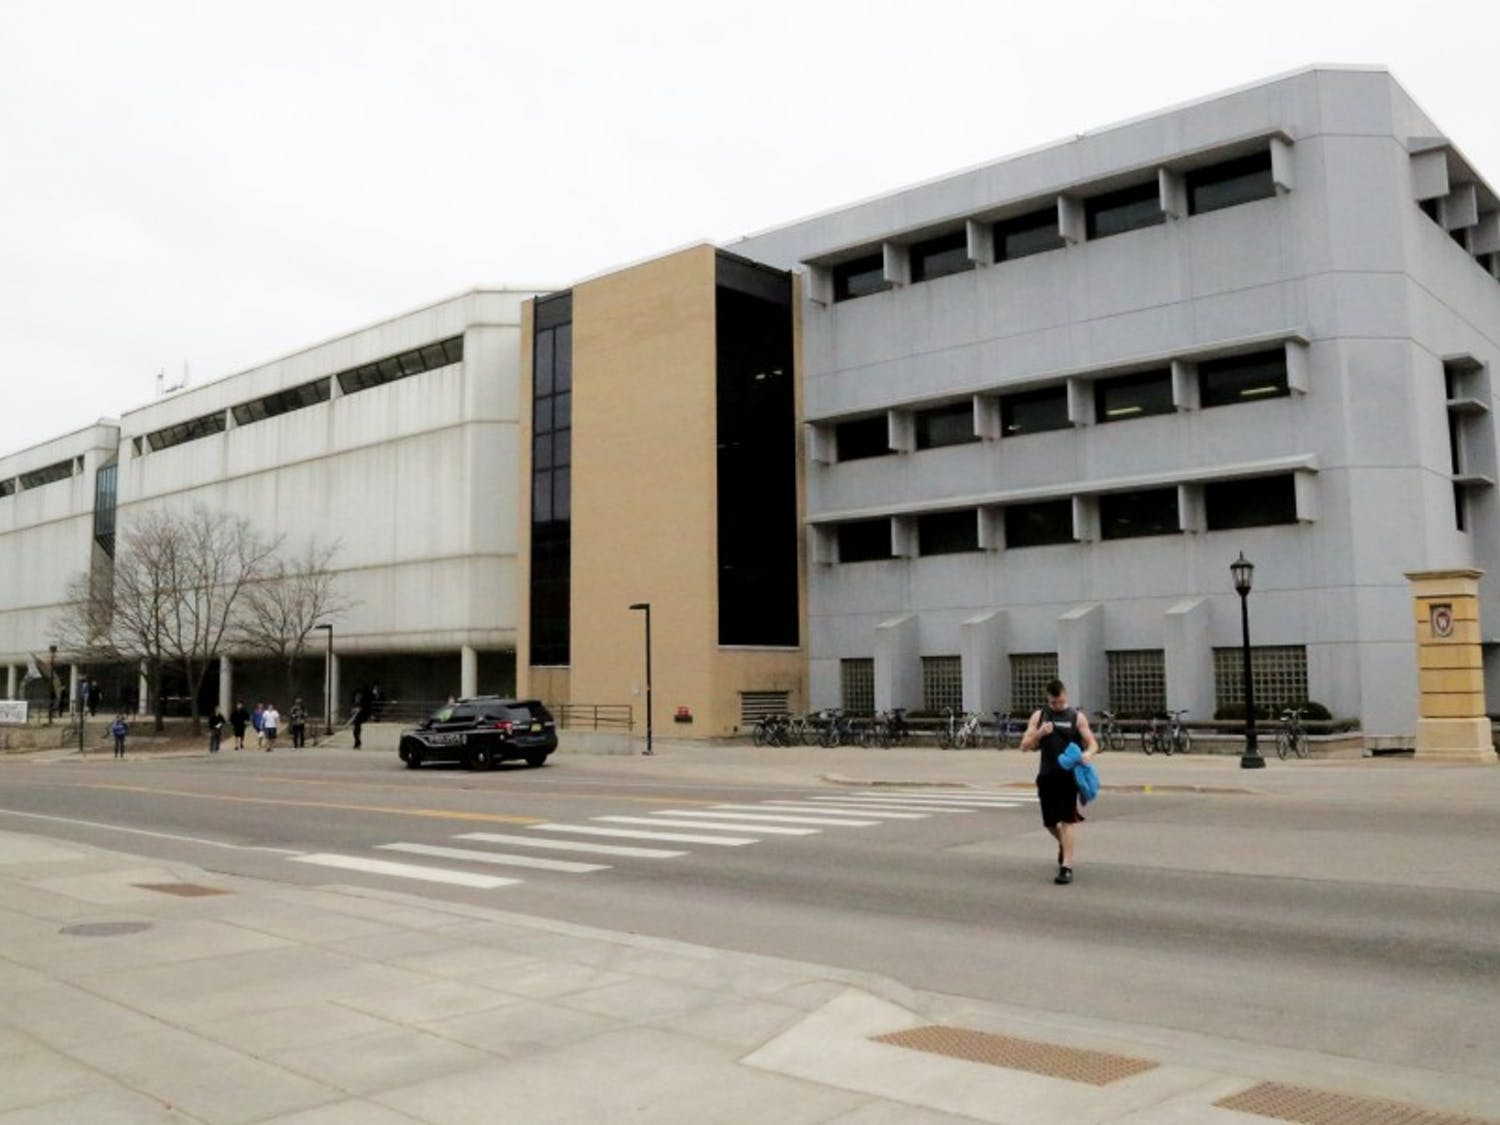 The SERF will officially close Aug. 18. with demolition expected to begin Oct. 1.